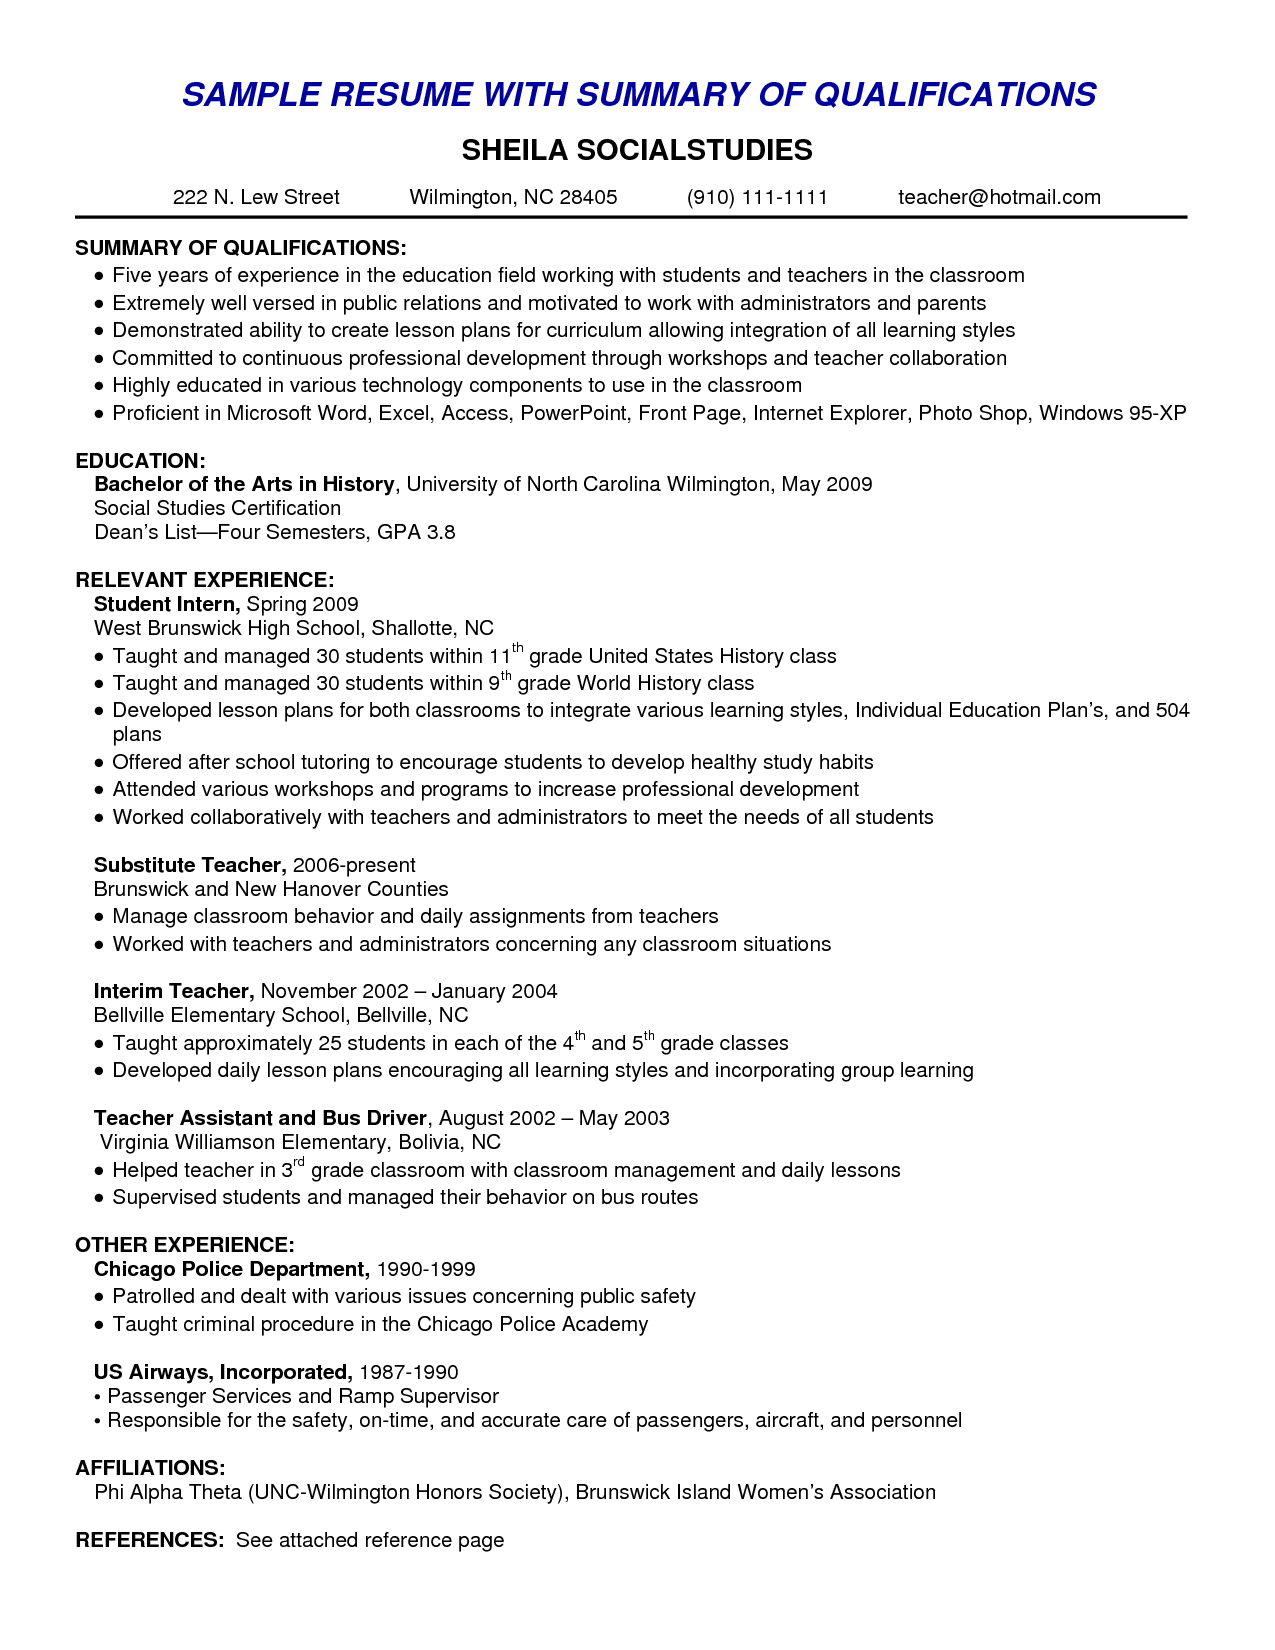 summary for resume examples free download interview questions and answers for retail resumes cover letter professional summary examples for housekeeper by sheila socialstudies